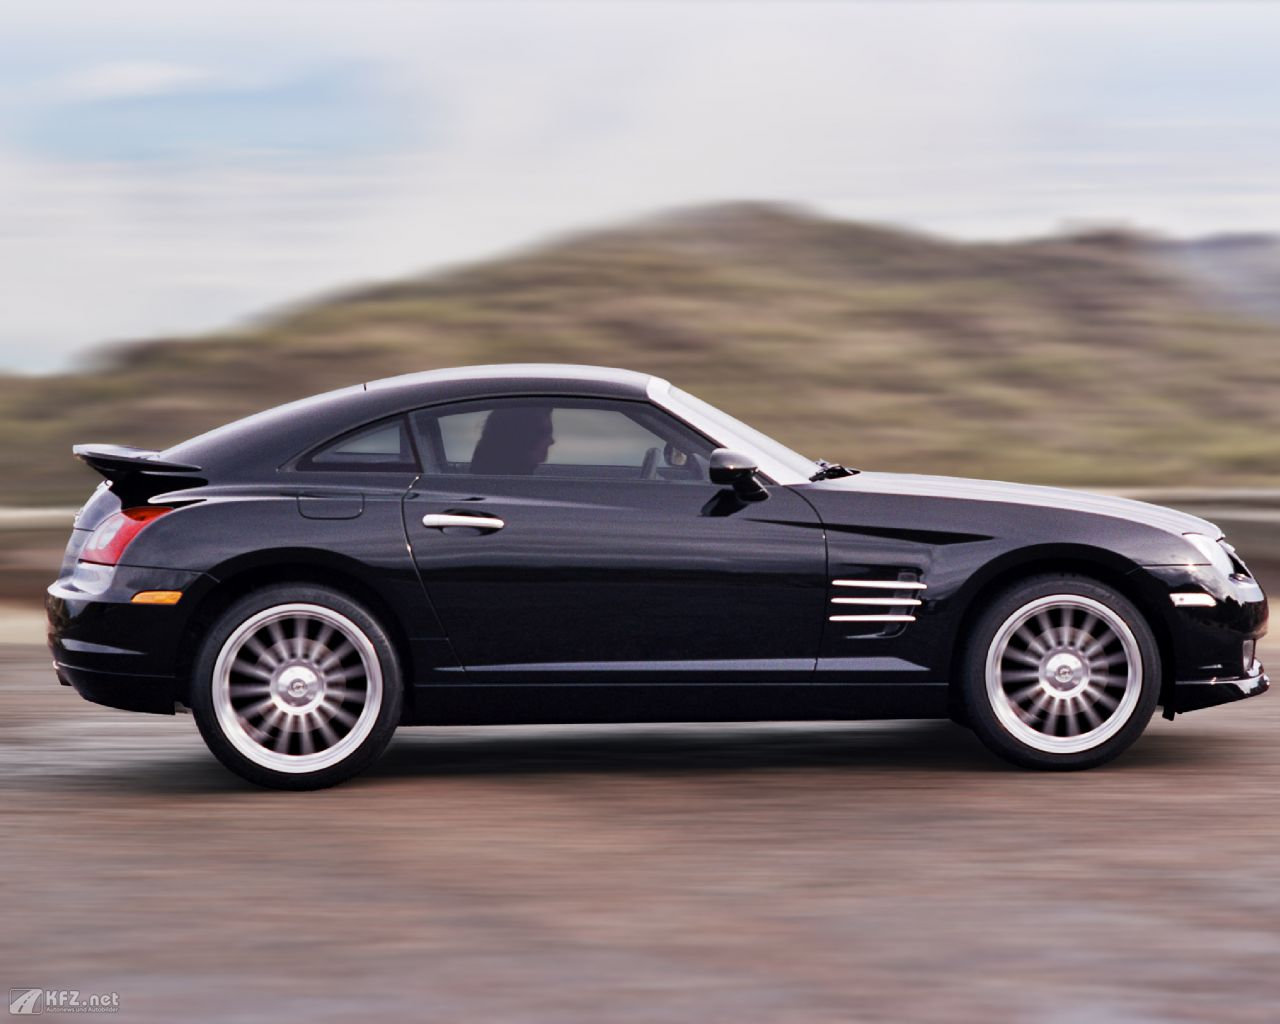 chrysler-crossfire-1280x1024-5